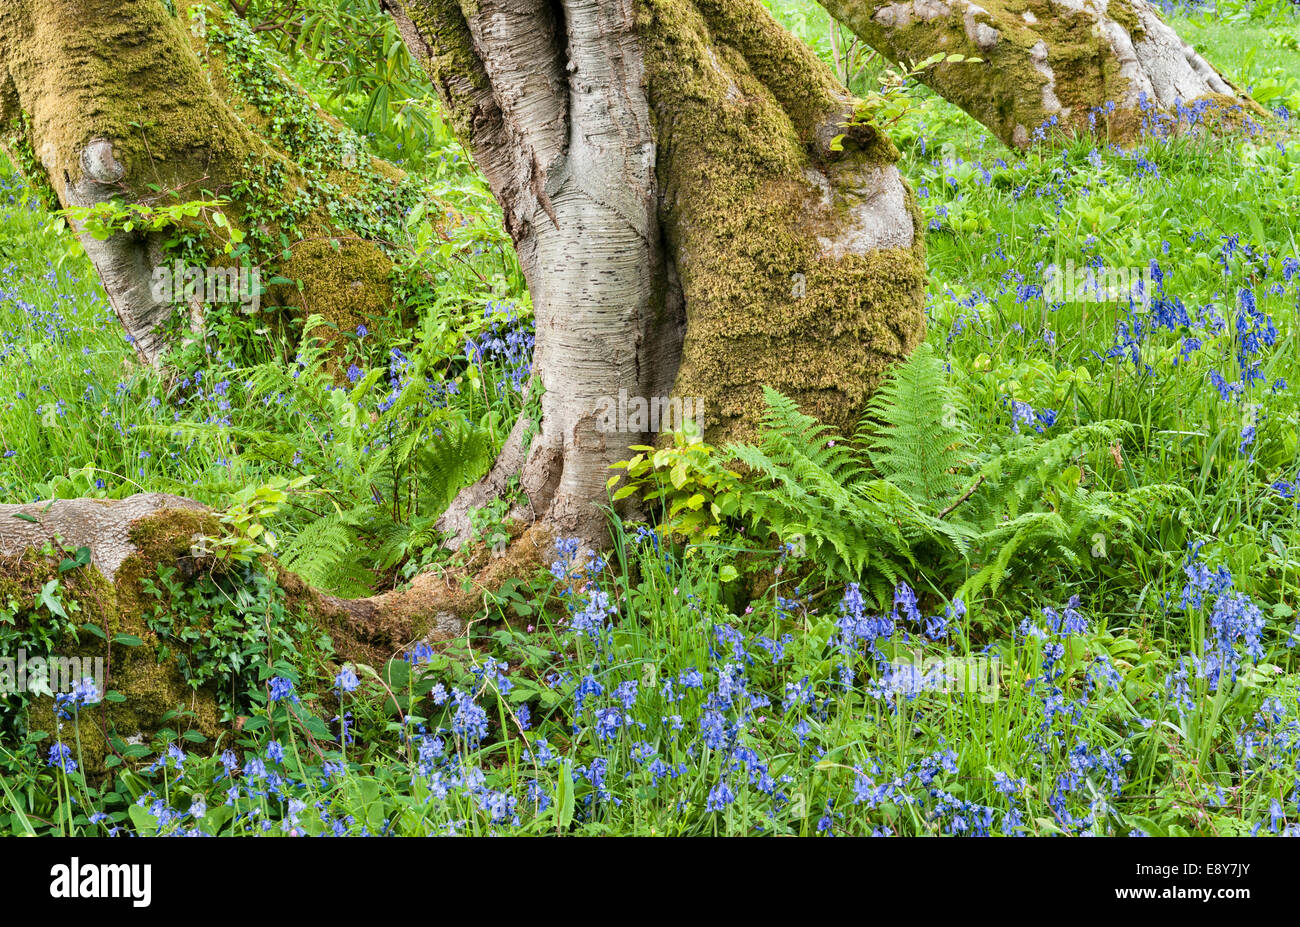 Tregrehan garden, Par, Cornwall, UK. Bluebells thrive in the woodland bordering the garden - Stock Image